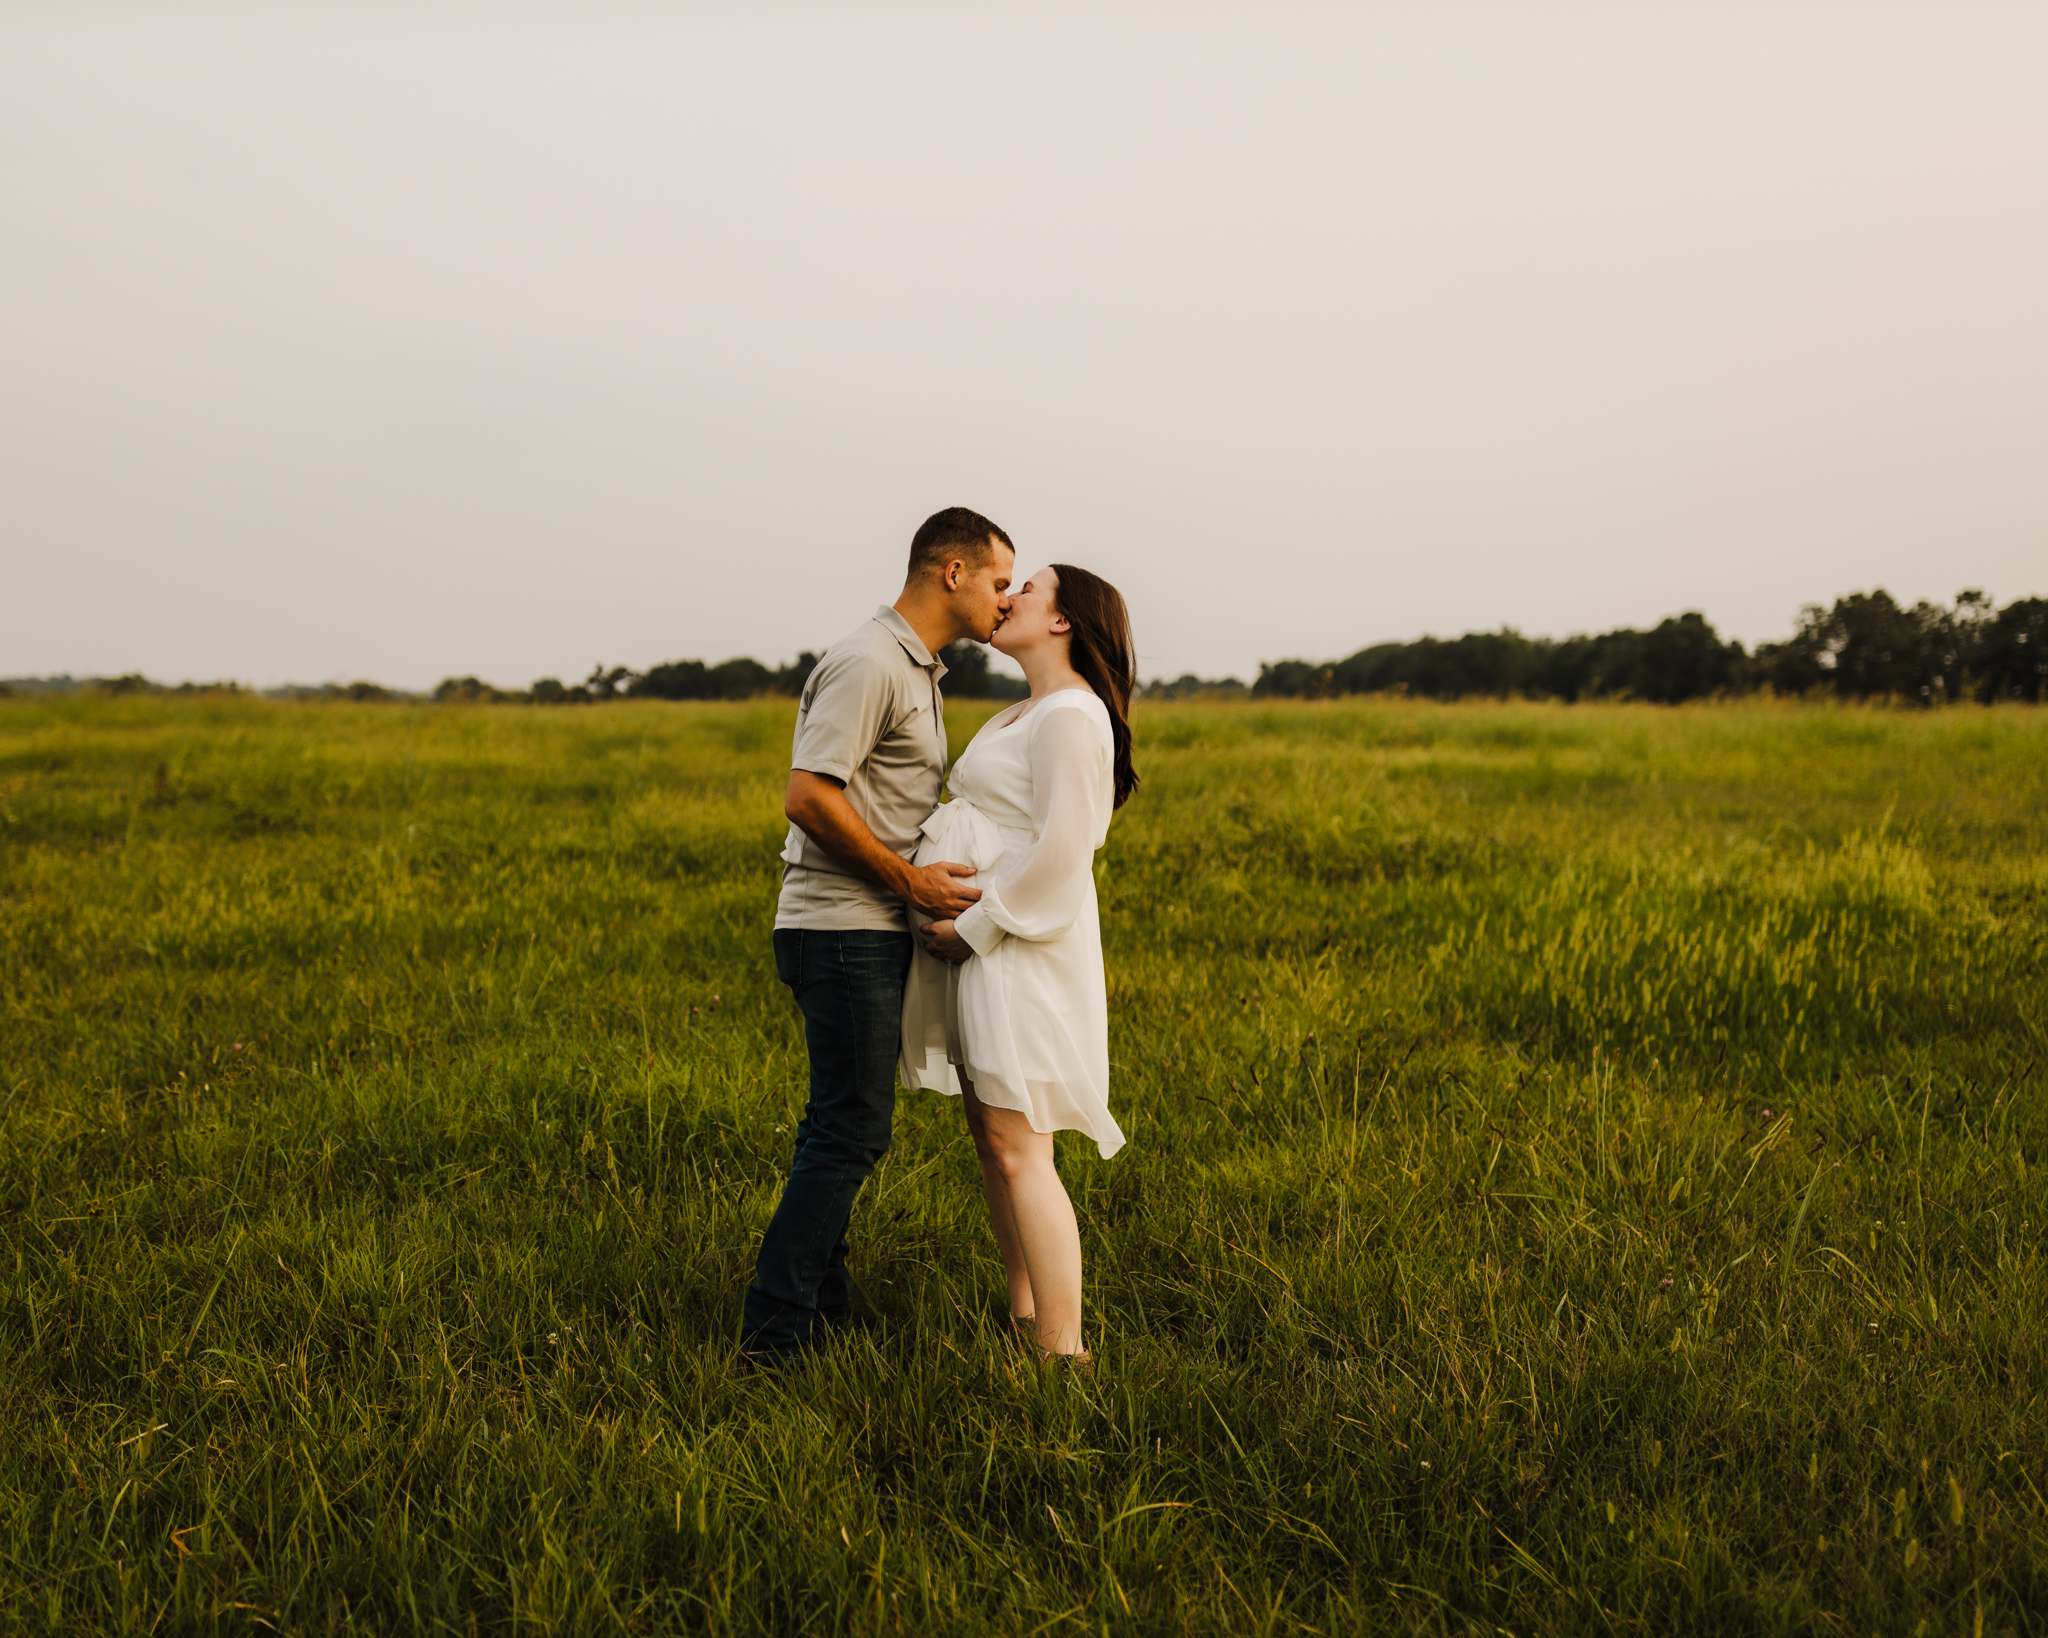 maternity photography session with mom kissing dad and mom in a white dress in an open field